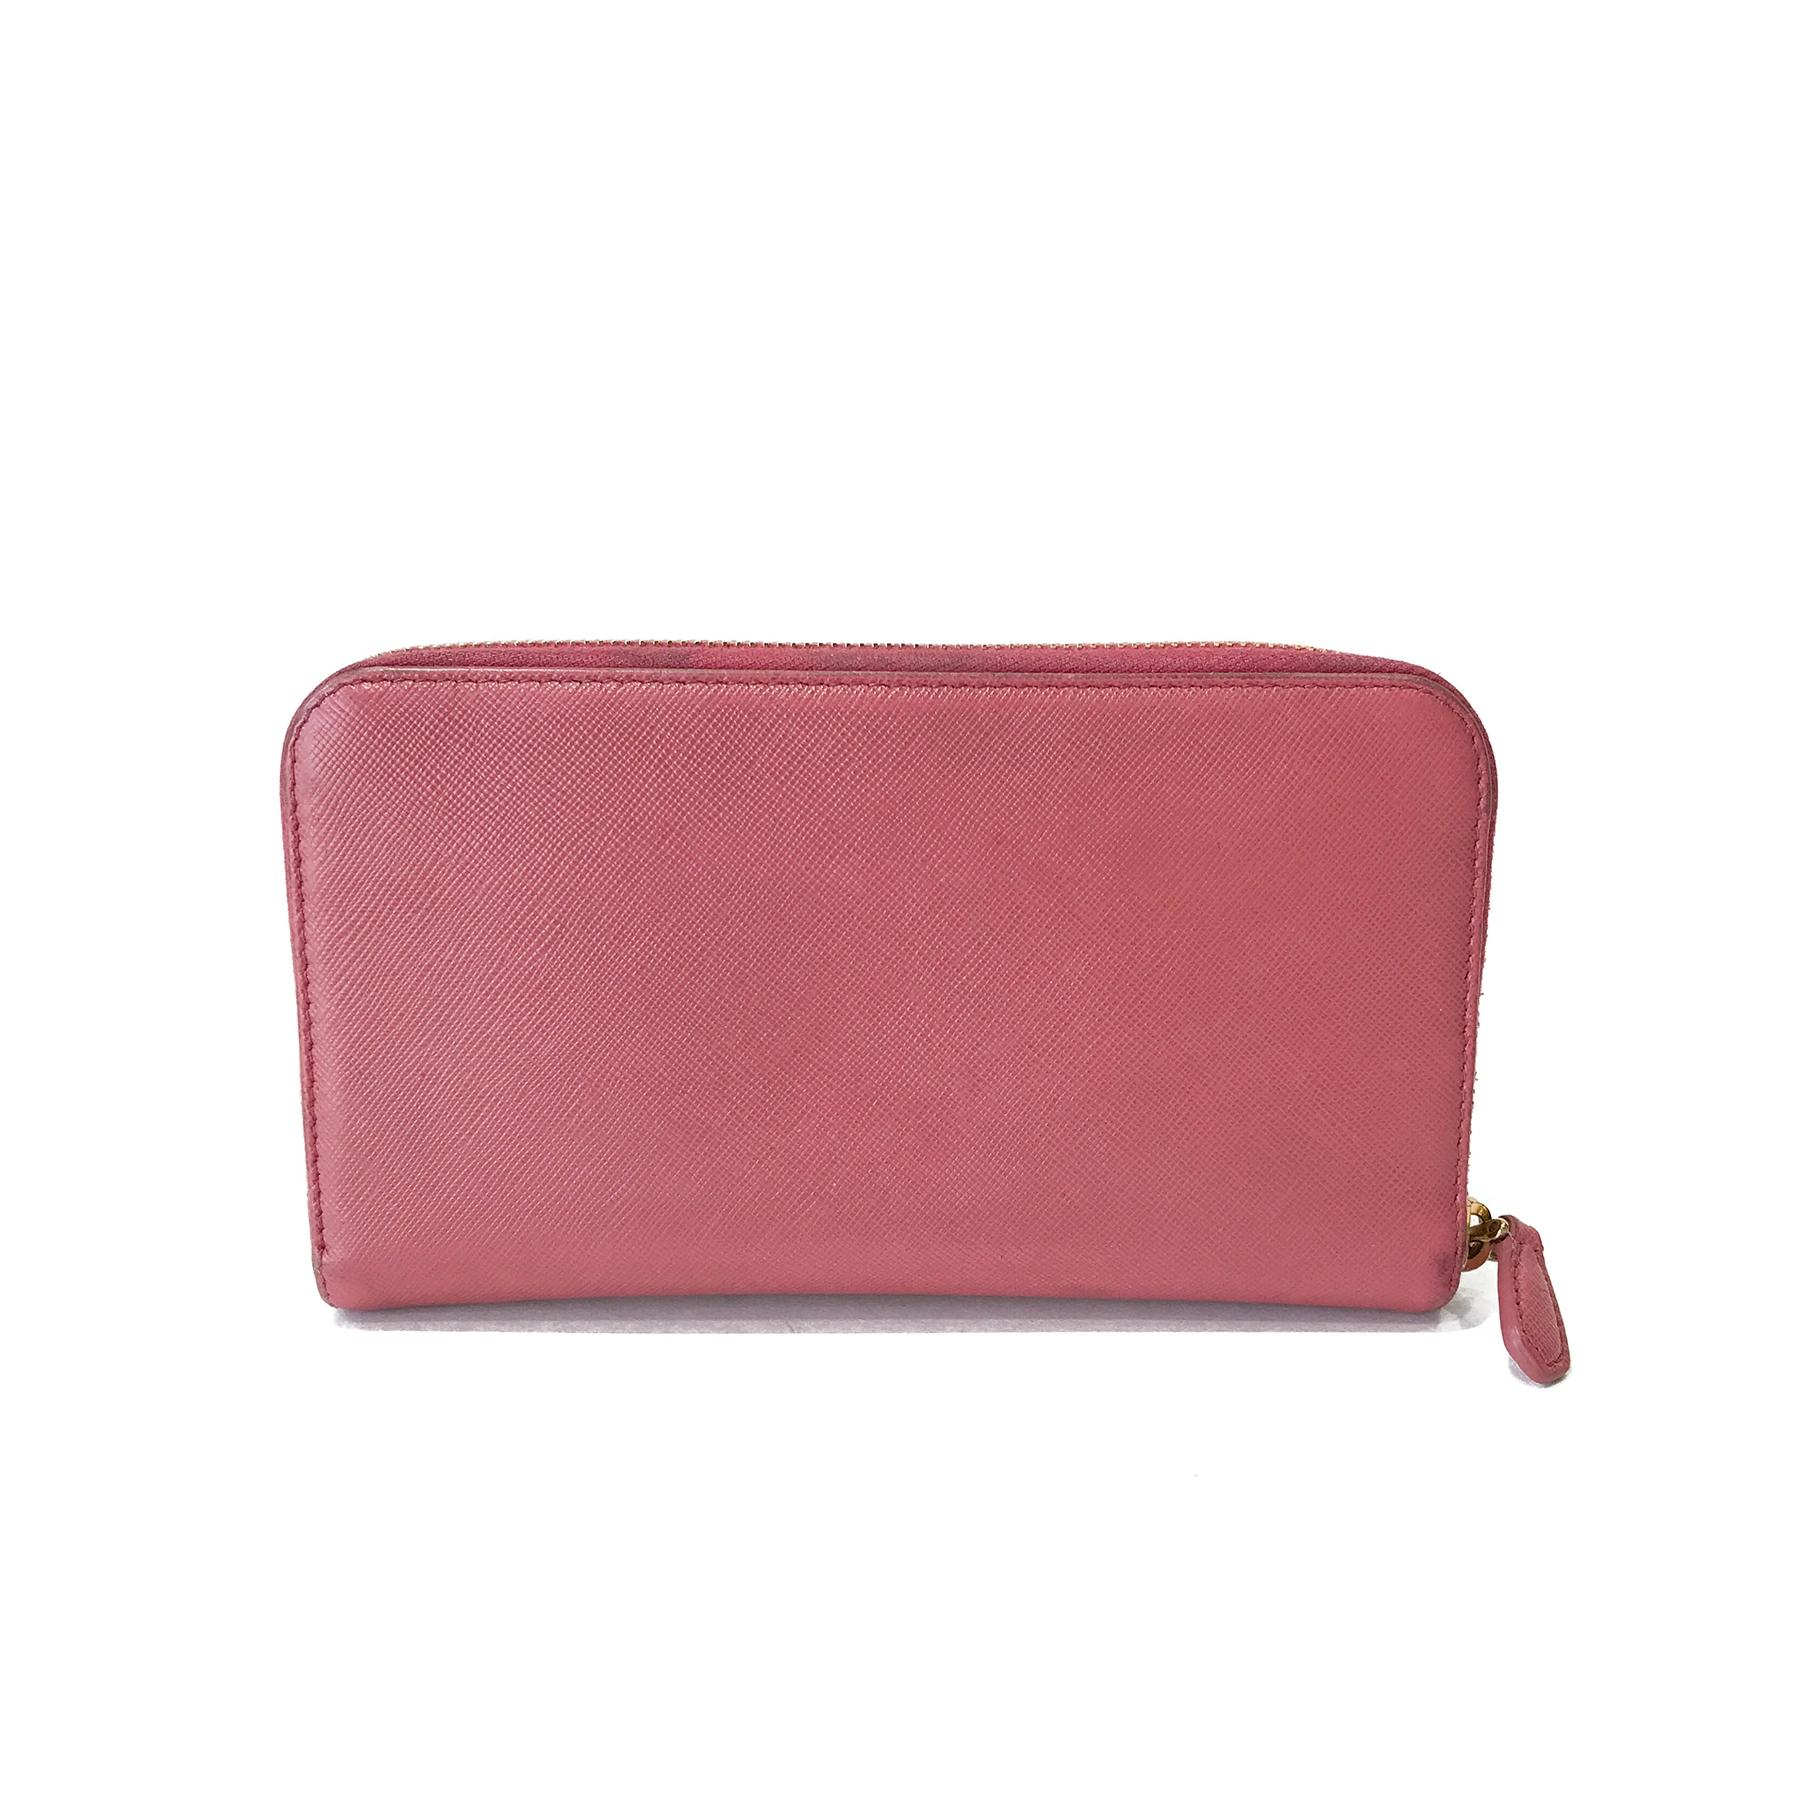 c4175a67 where to buy prada long wallet pink 55ed4 0f8d3